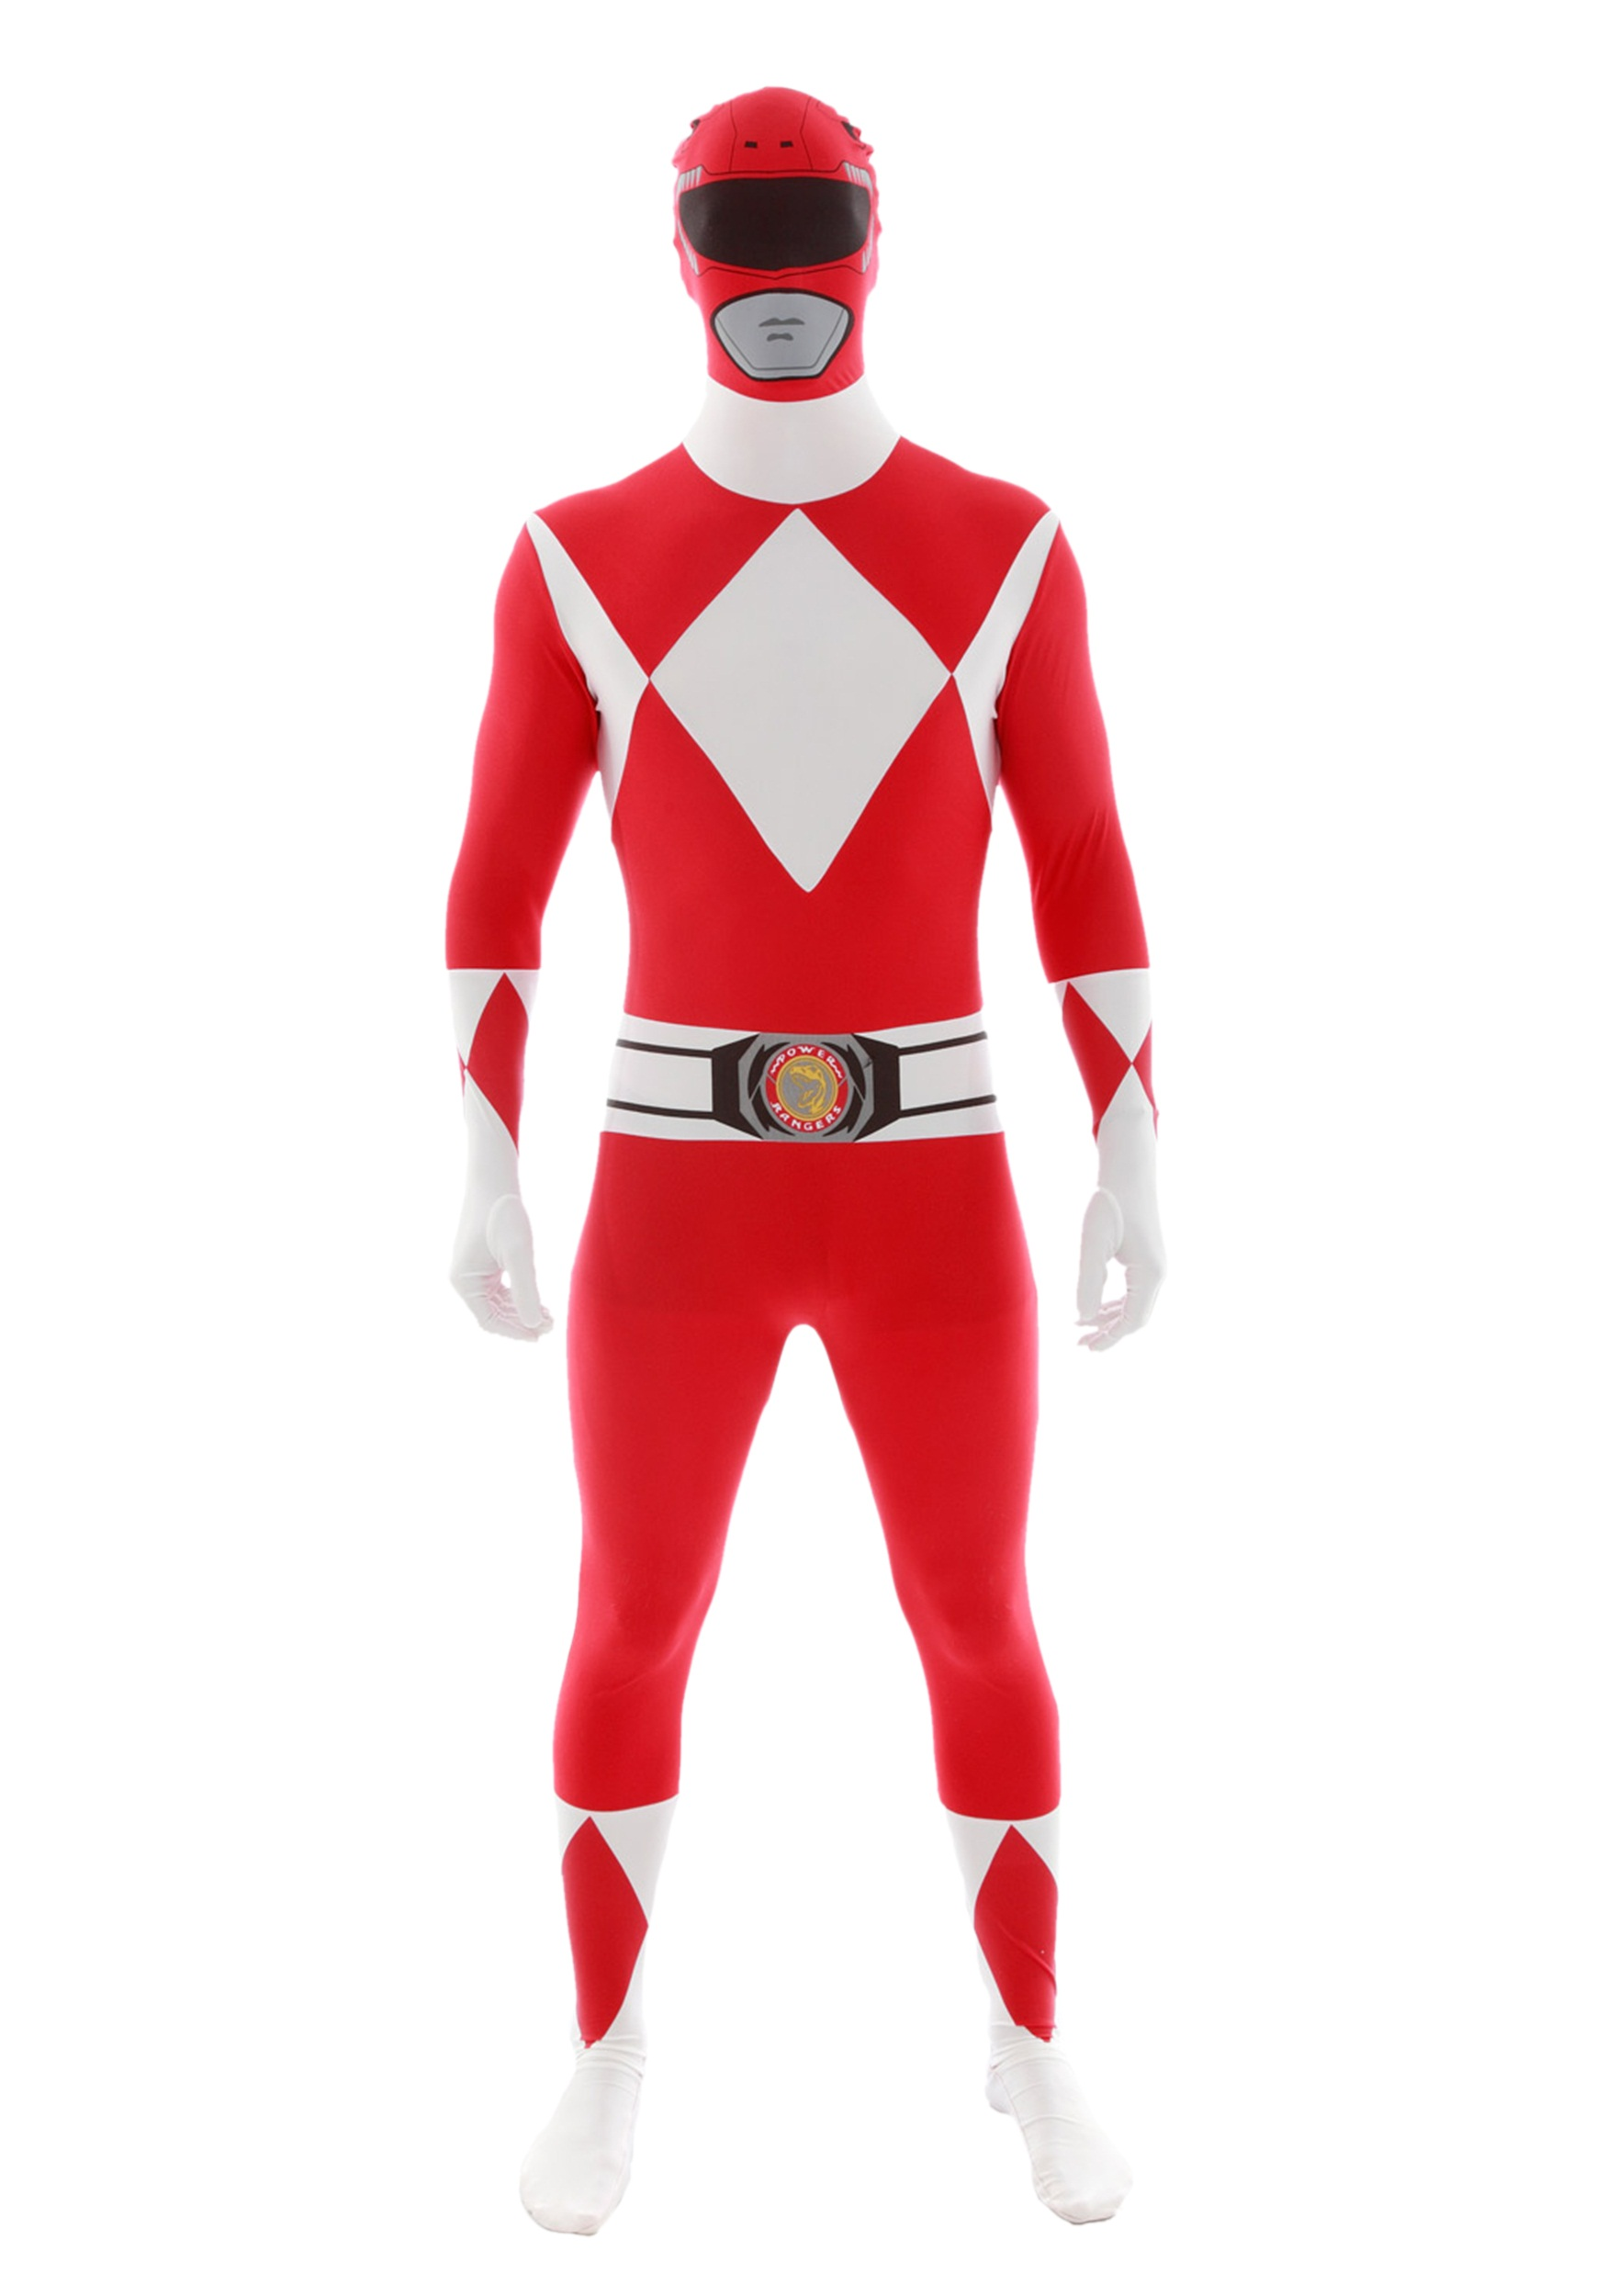 Power Rangers: Red Ranger Morphsuit